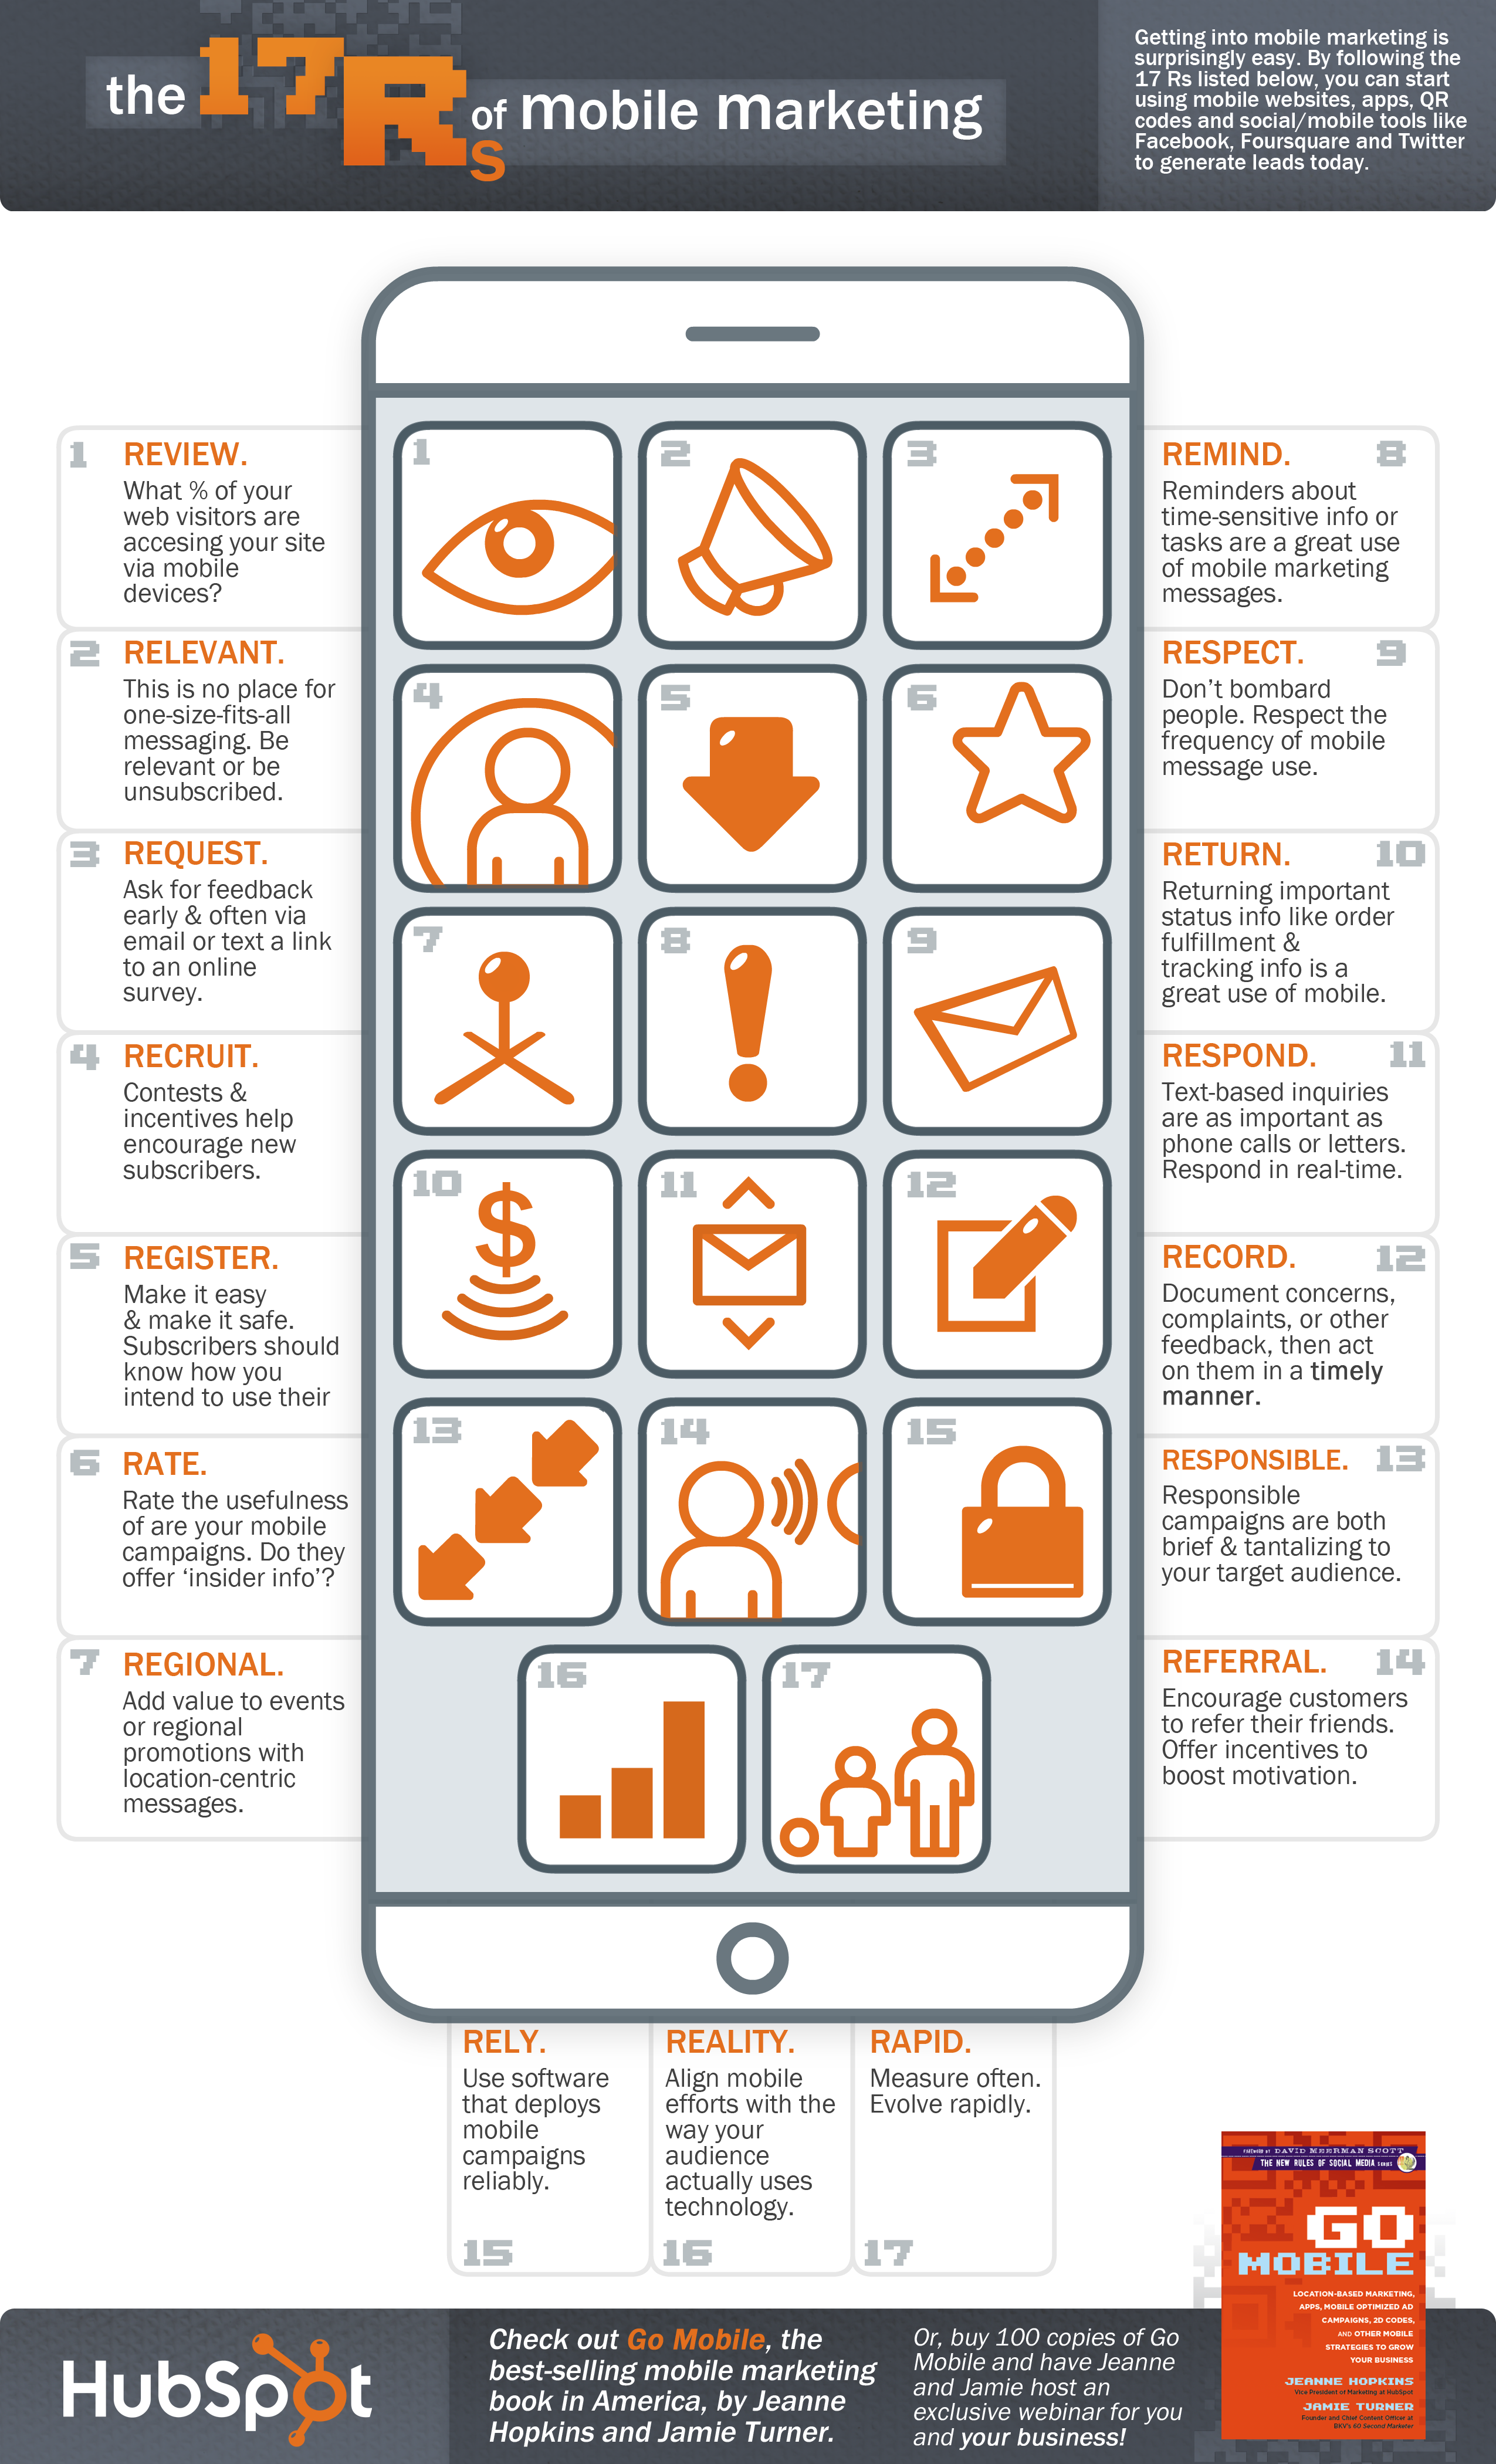 17 R's of Mobile Marketing Infographic FULL SIZE